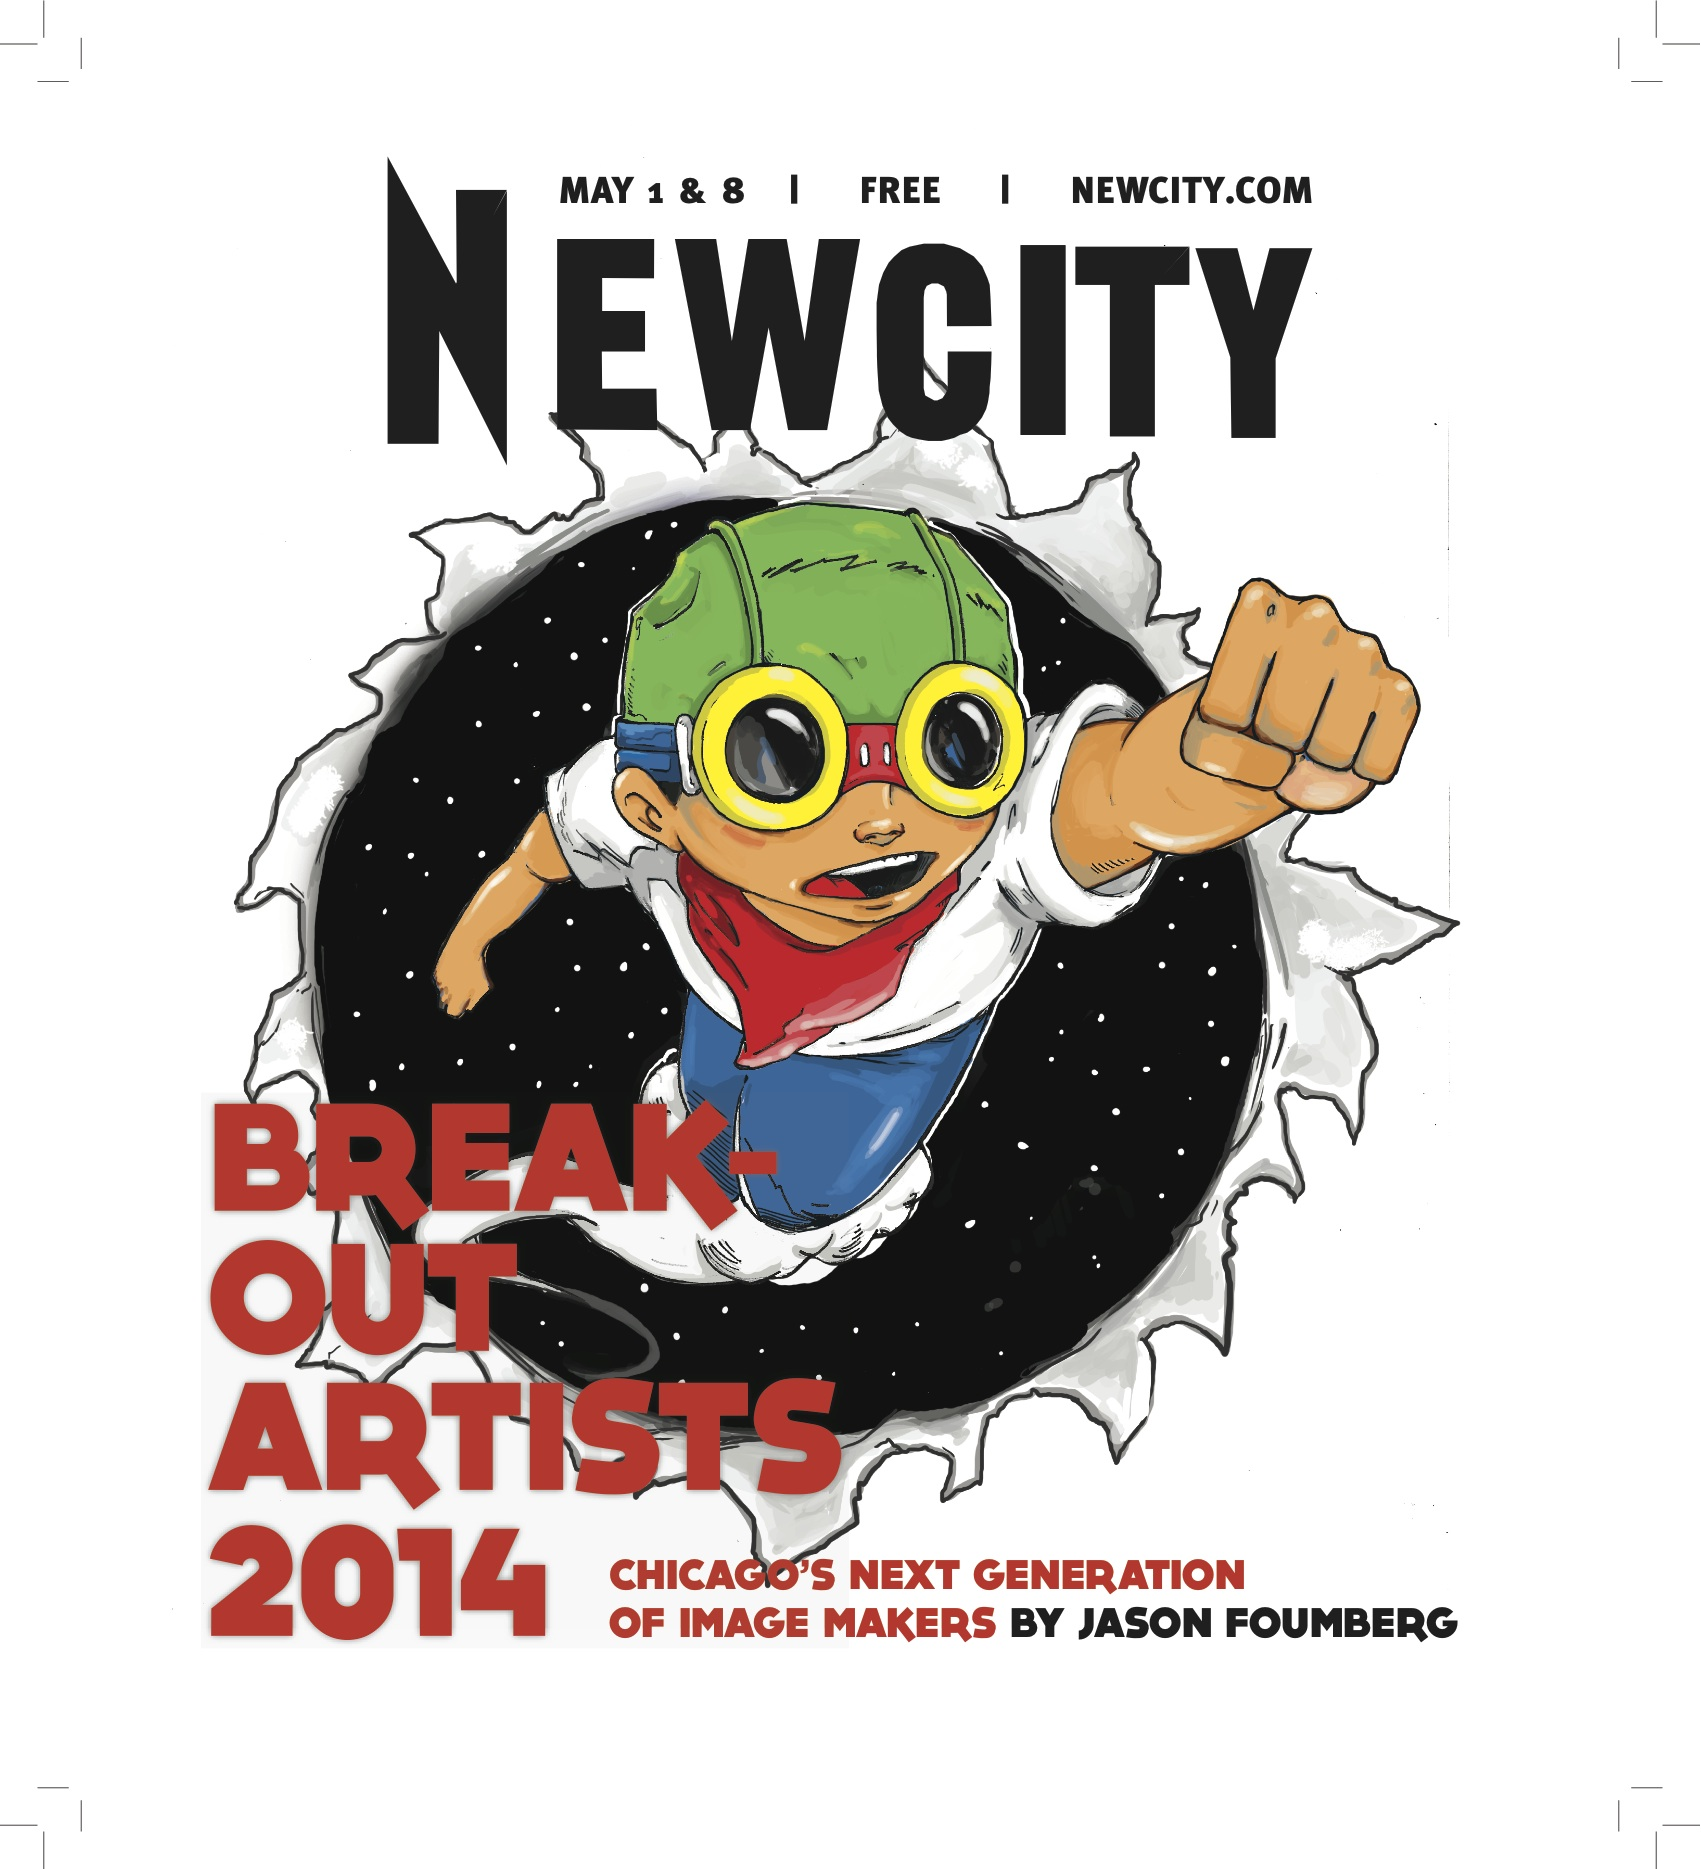 Breakout Artists: Chicago's Next Generation of Image Makers